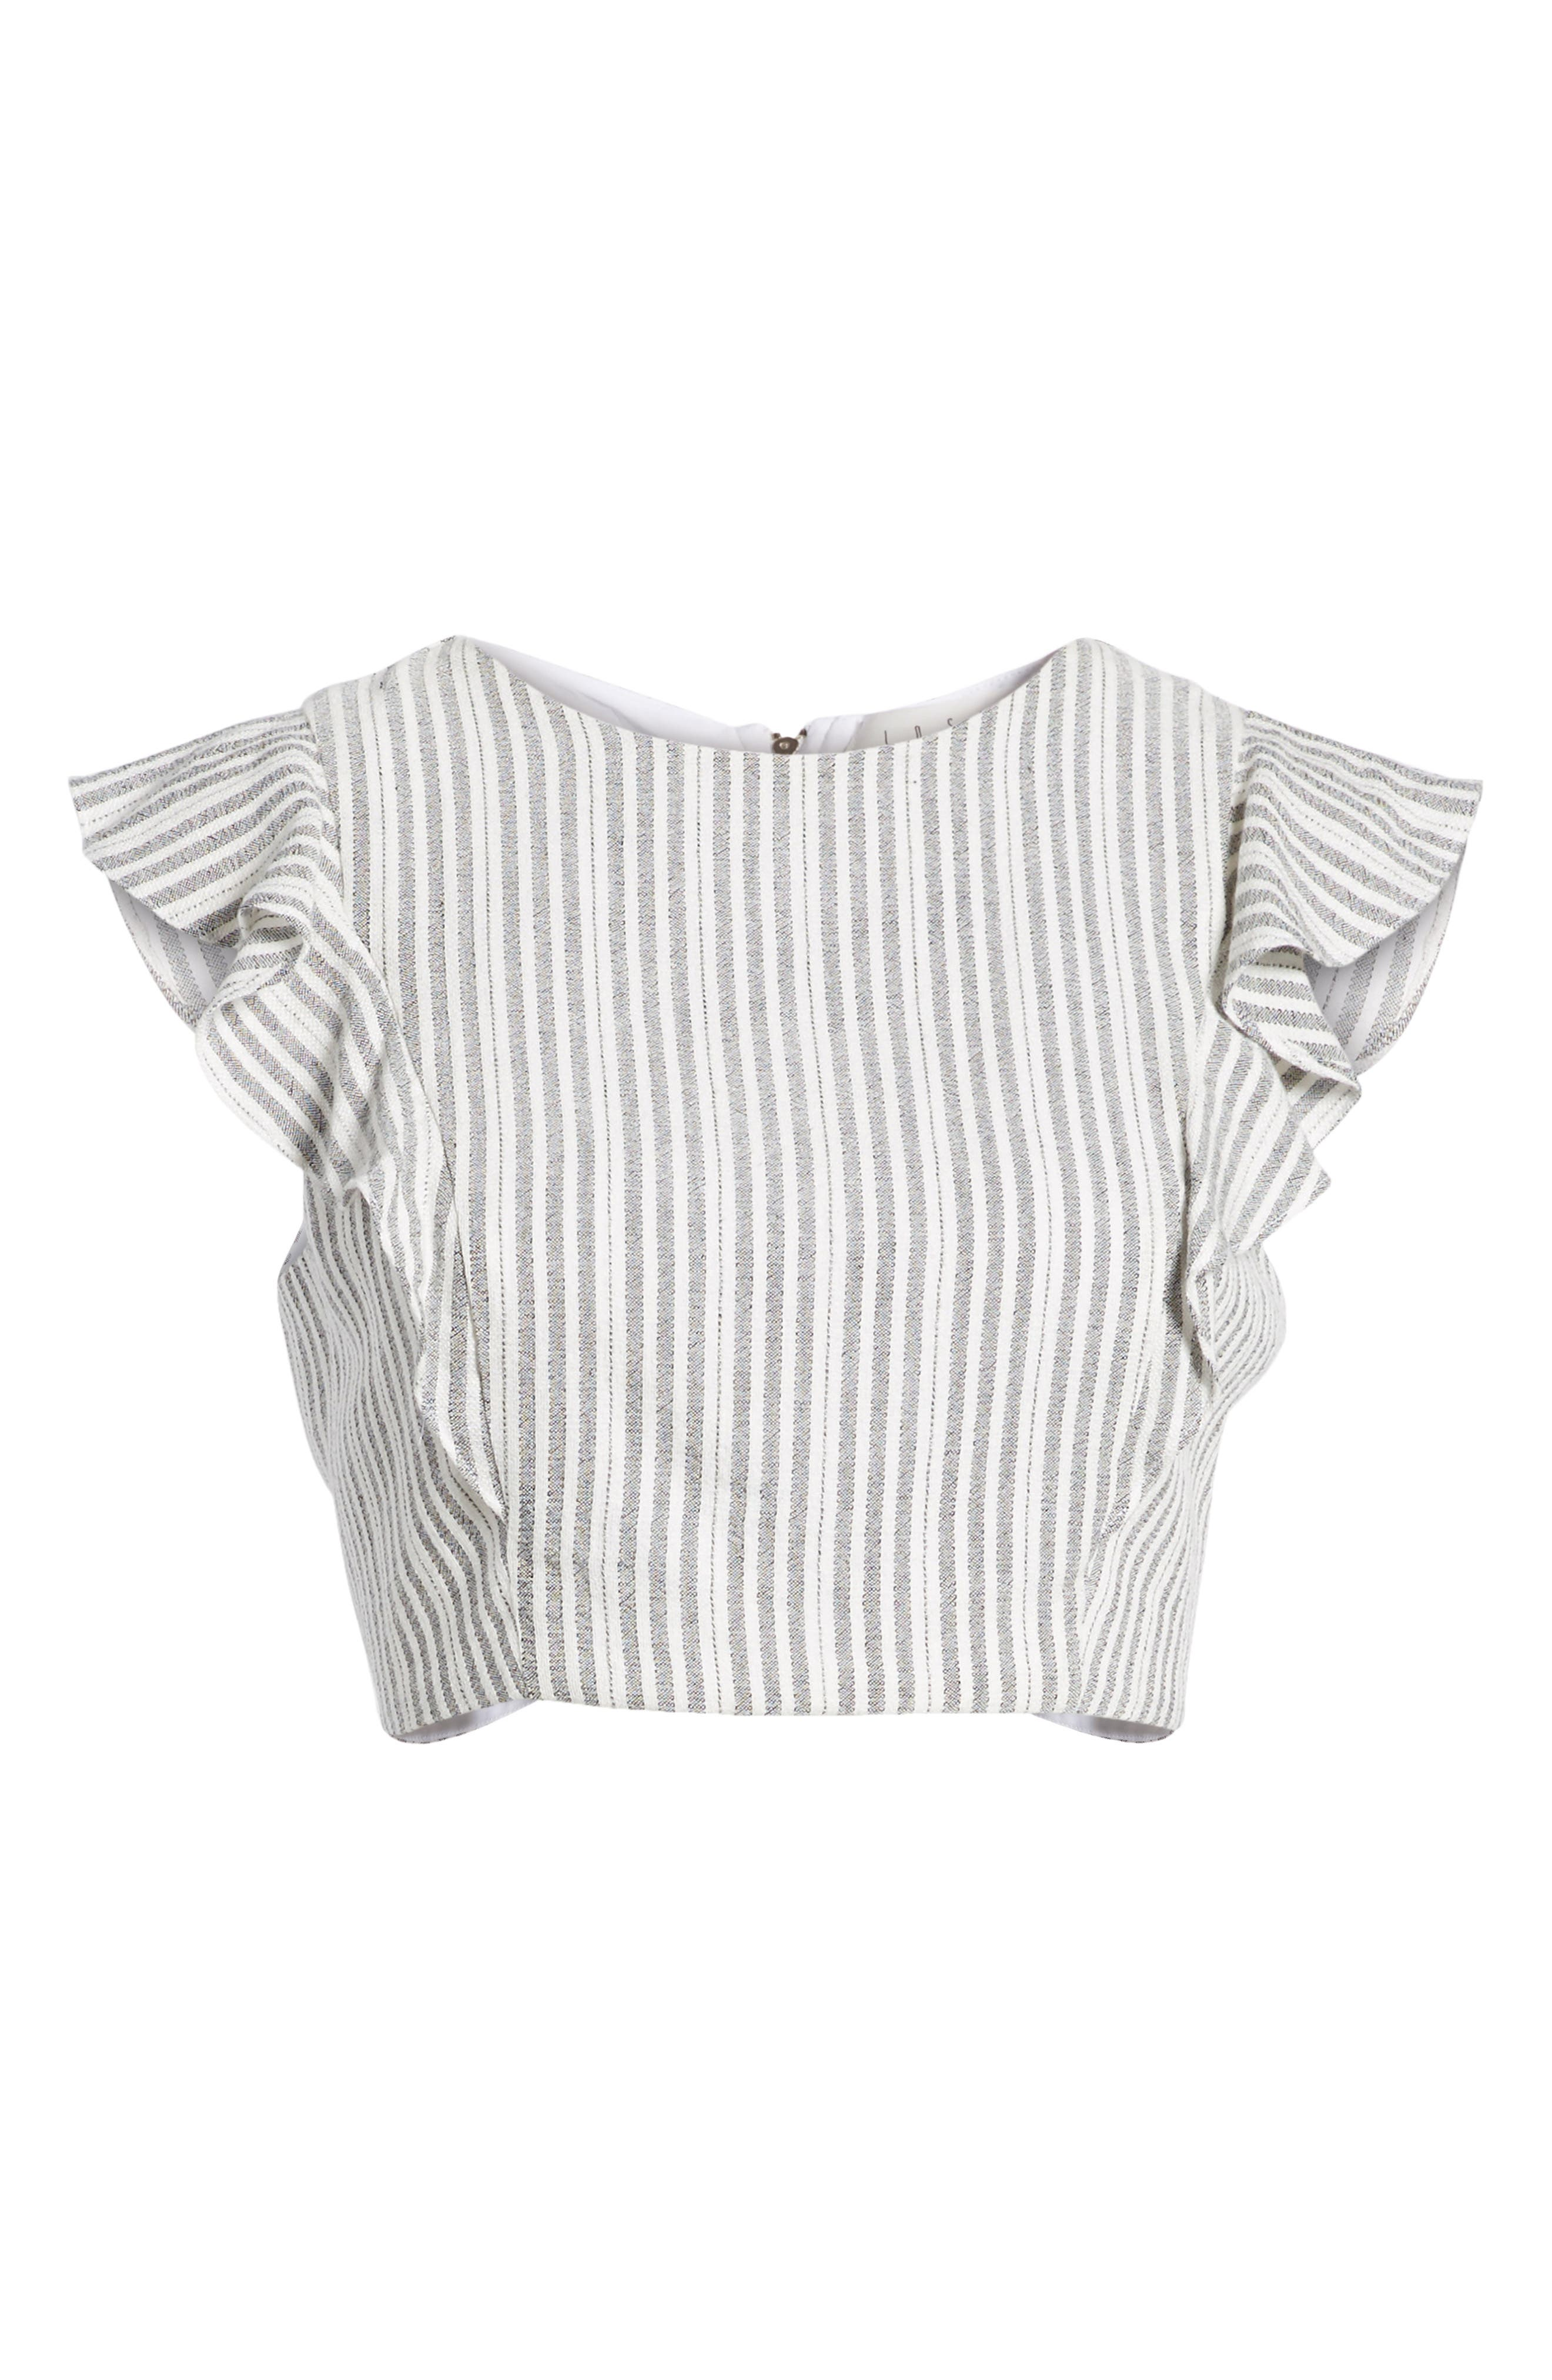 Vacay Flutter Sleeve Crop Top,                             Alternate thumbnail 6, color,                             061